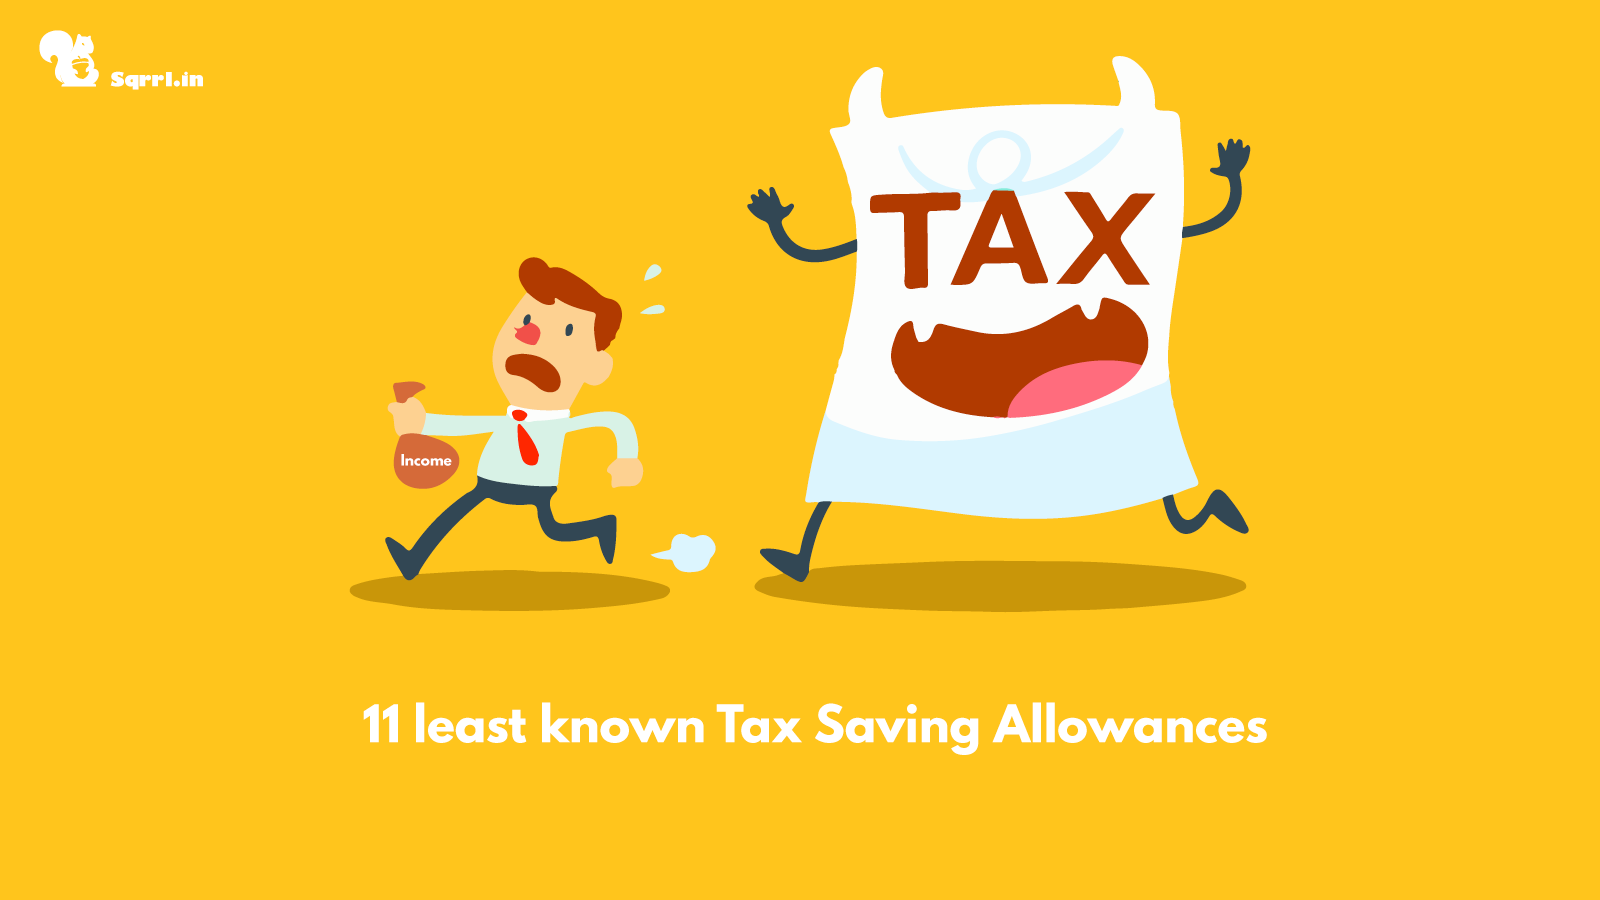 11 least know allowances for income tax saving